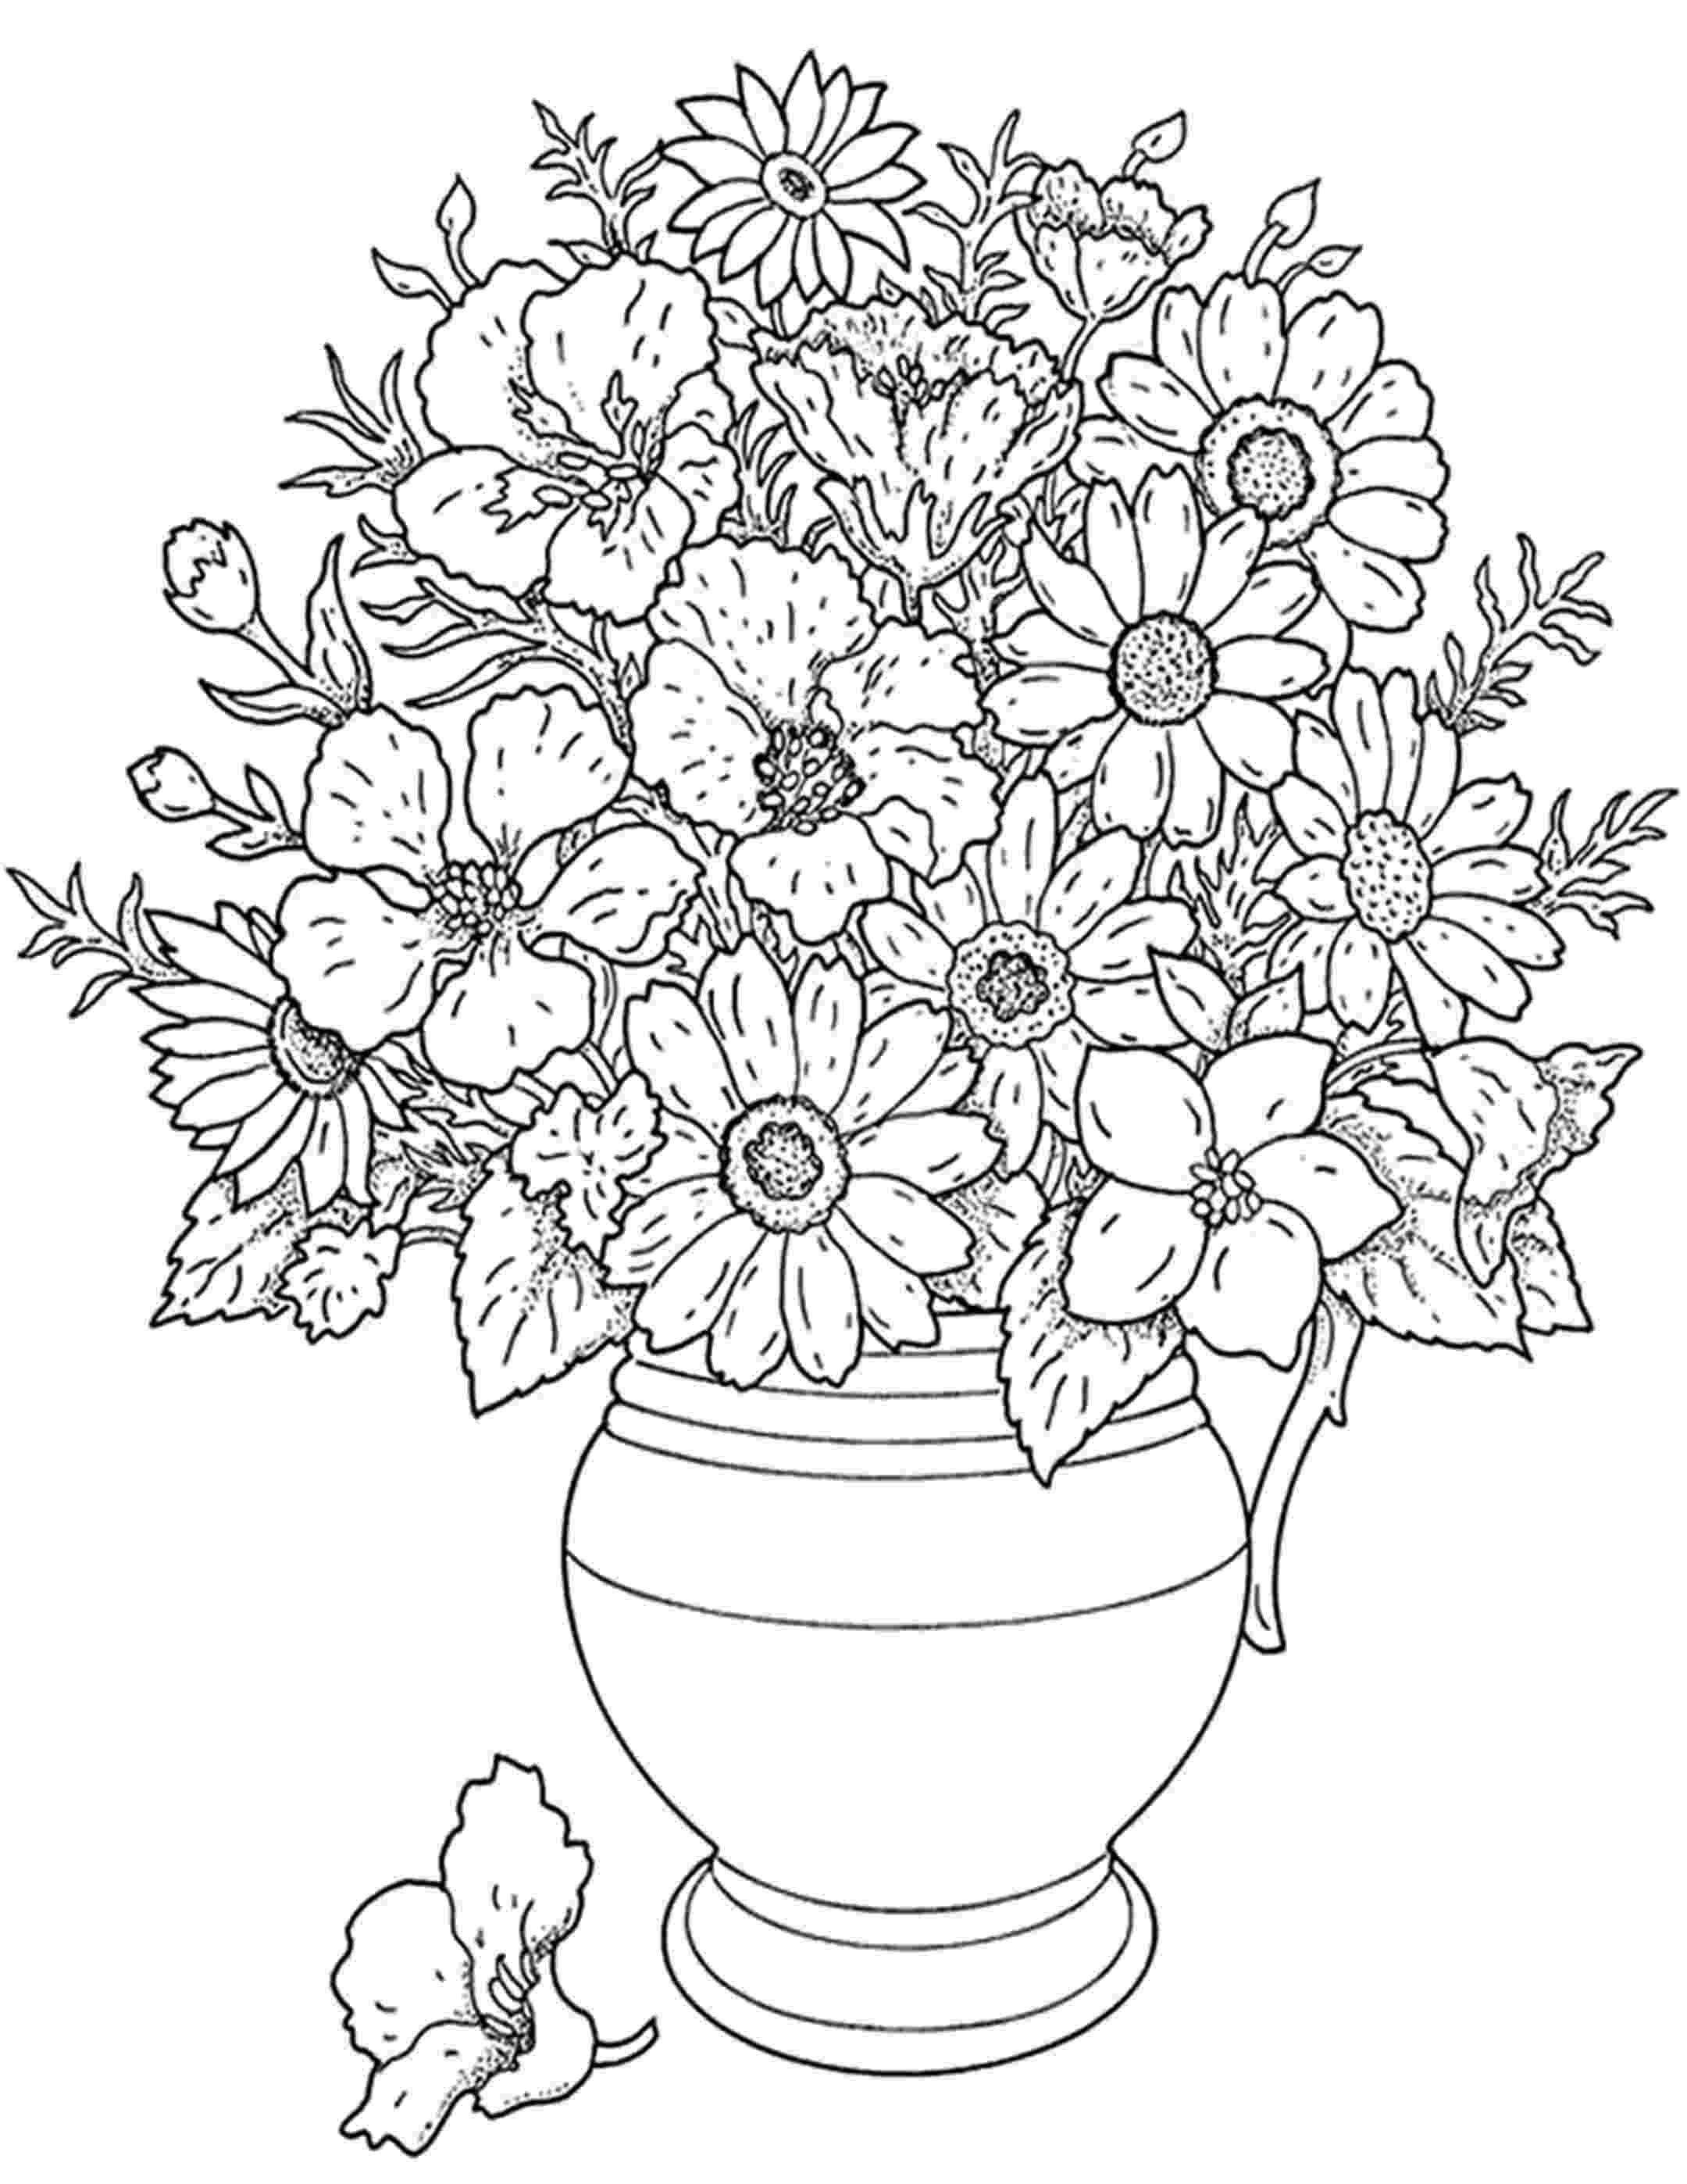 colouring pages for flowers free printable flower coloring pages for kids best pages colouring for flowers